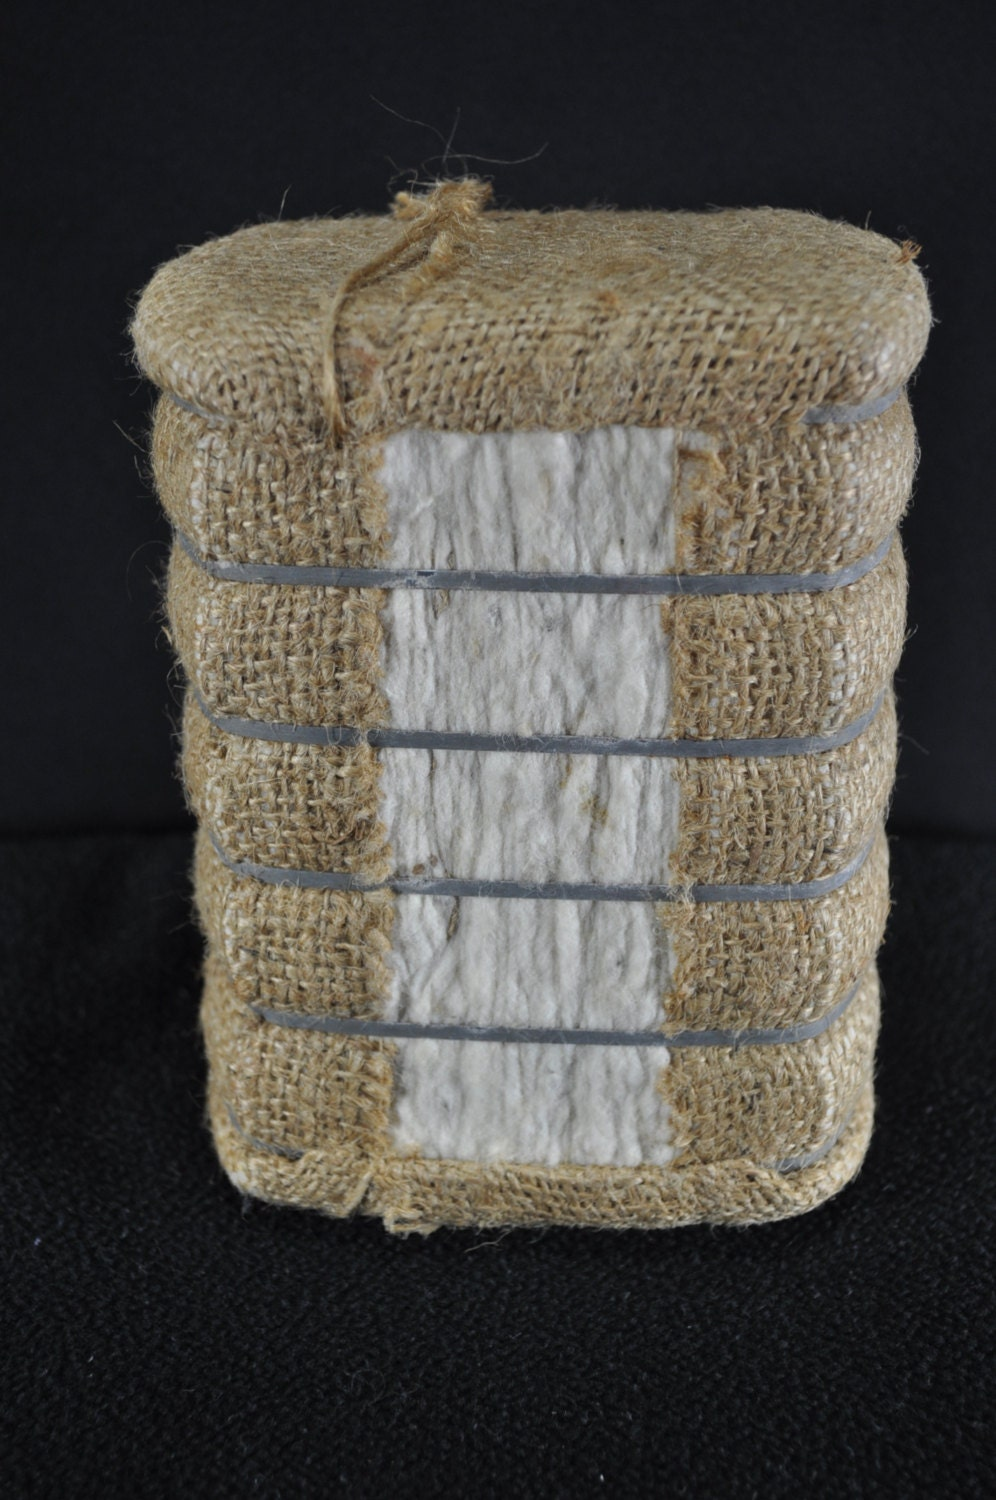 Small Raw Wrapped Cotton Bale Souvenir From Lubbock Texas